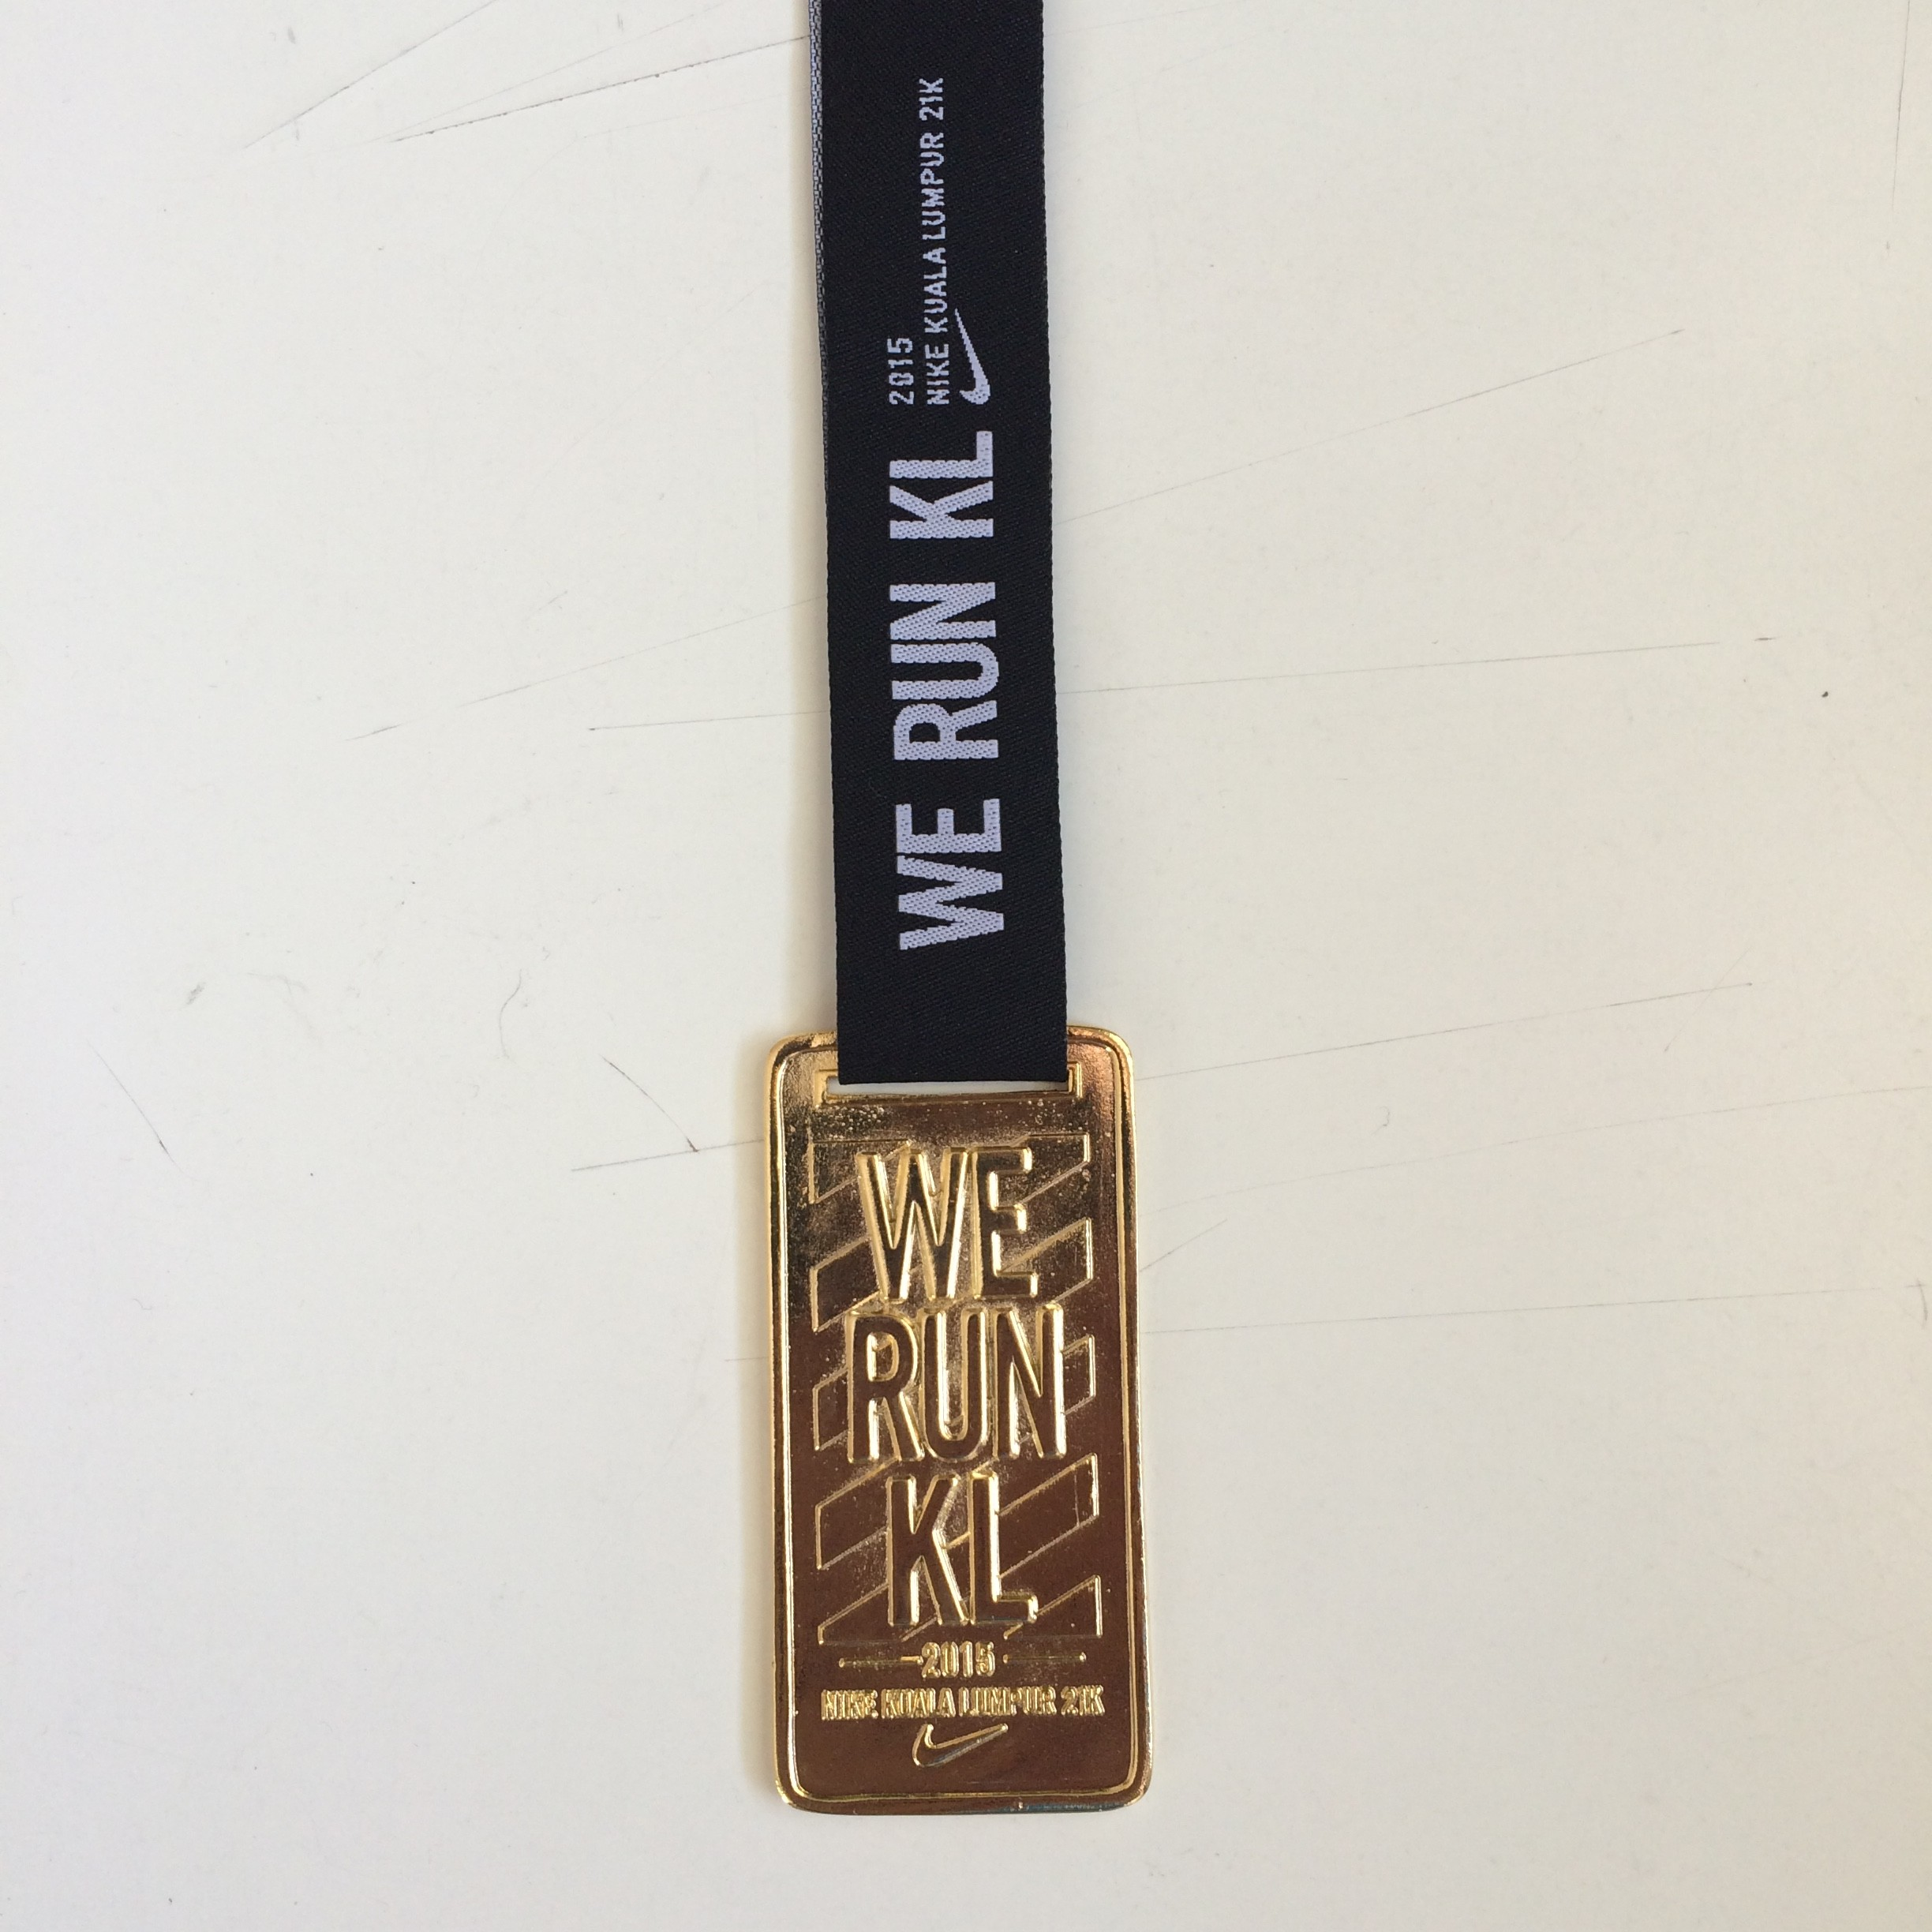 Nike We Run KL 2015 - the medal